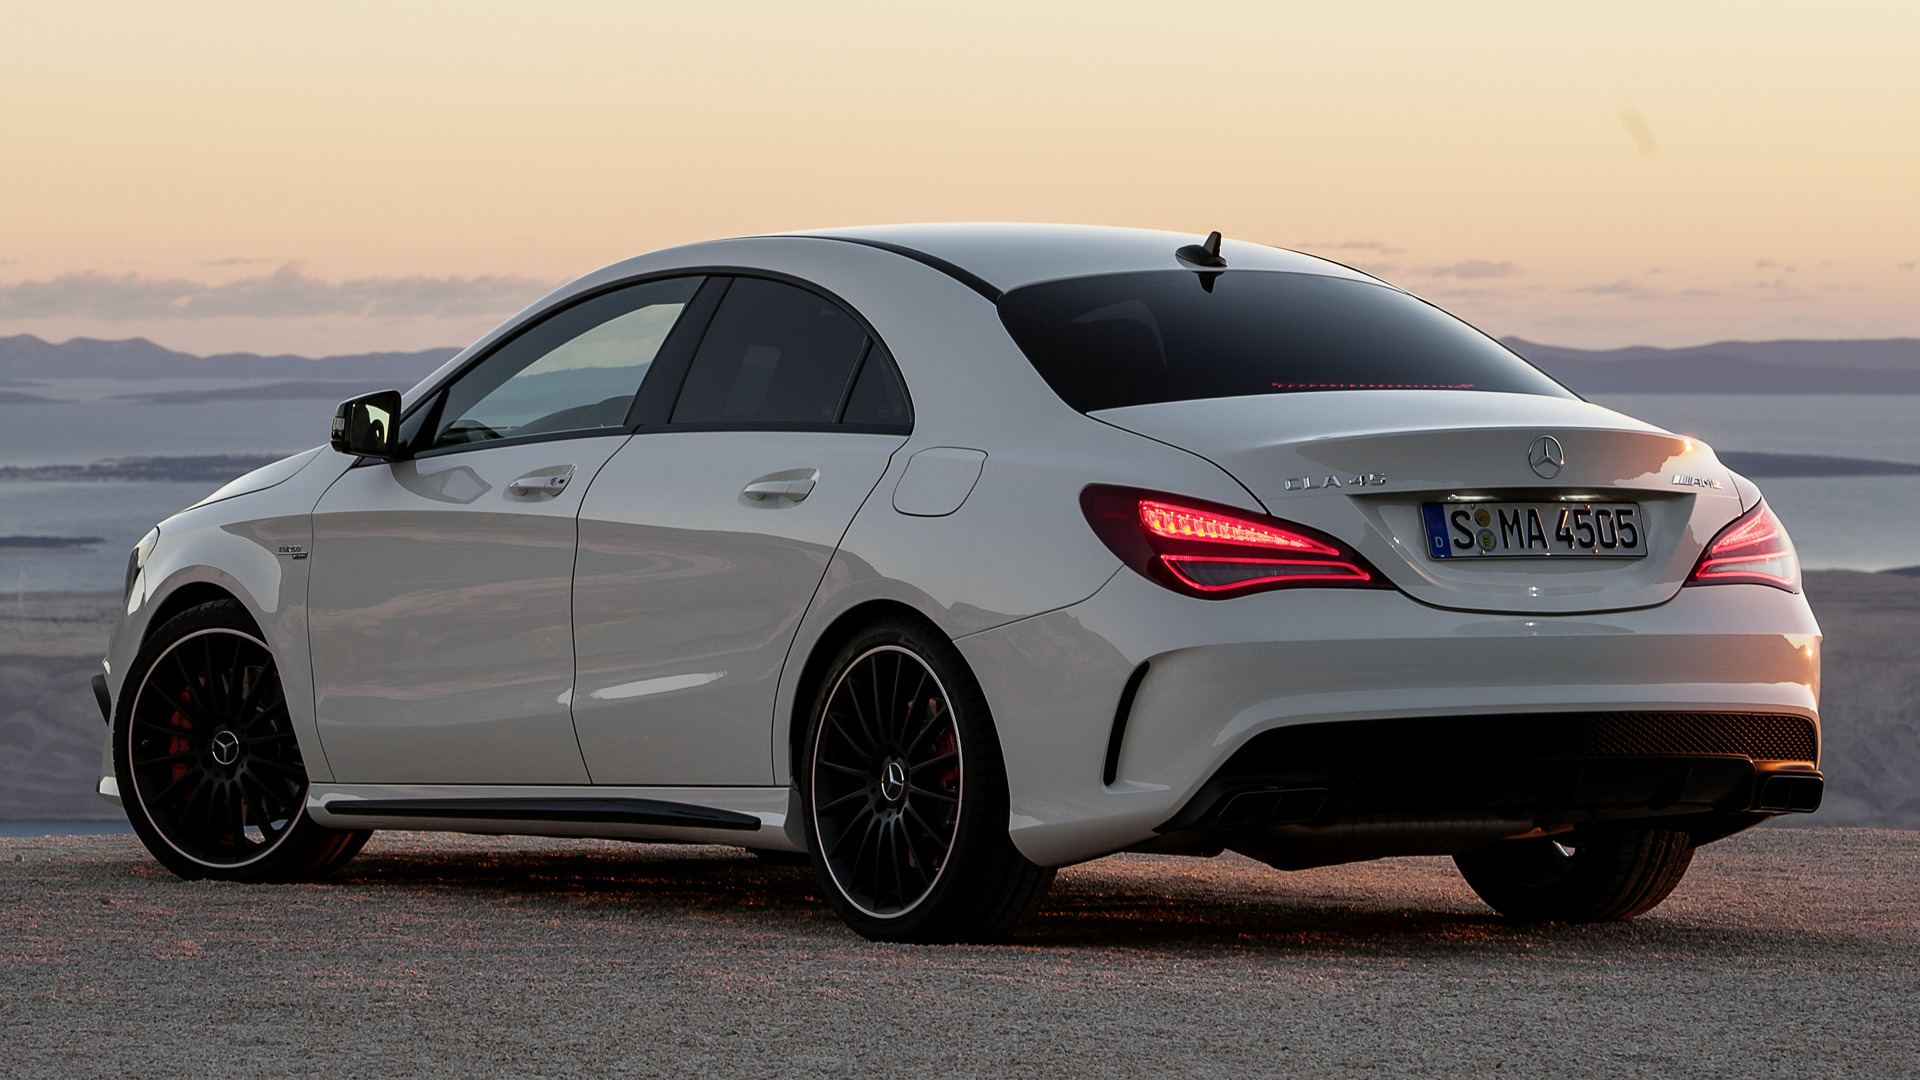 Mercedes Cla 45 Amg >> 2013 Mercedes-Benz CLA 45 AMG - Wallpapers and HD Images ...